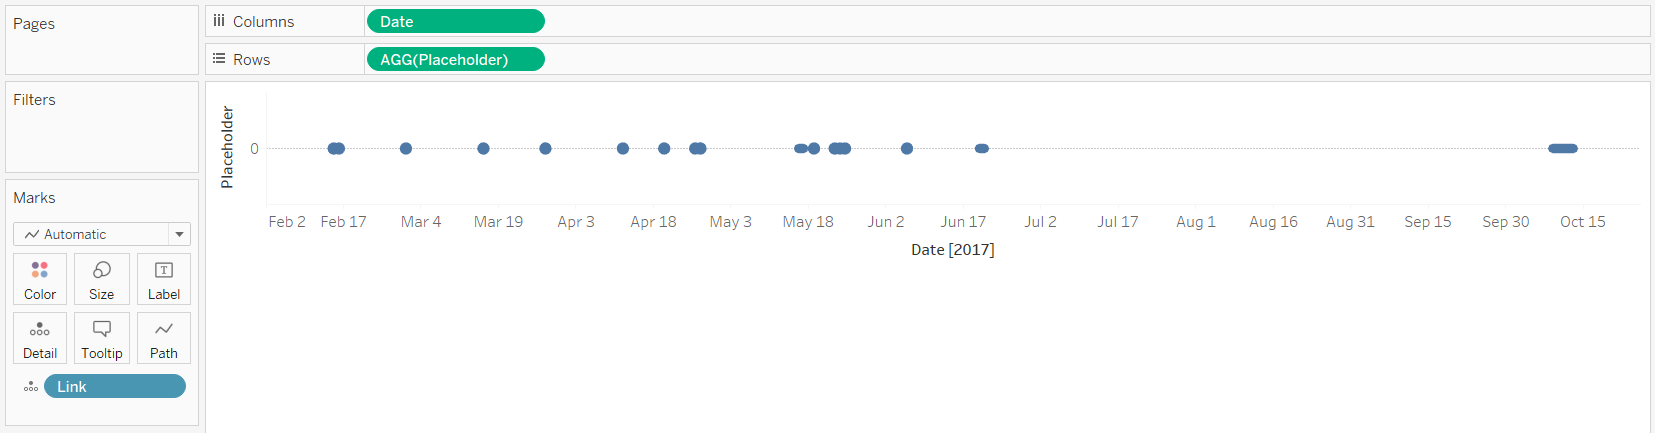 Tableau Timeline with Events on Detail Marks Card